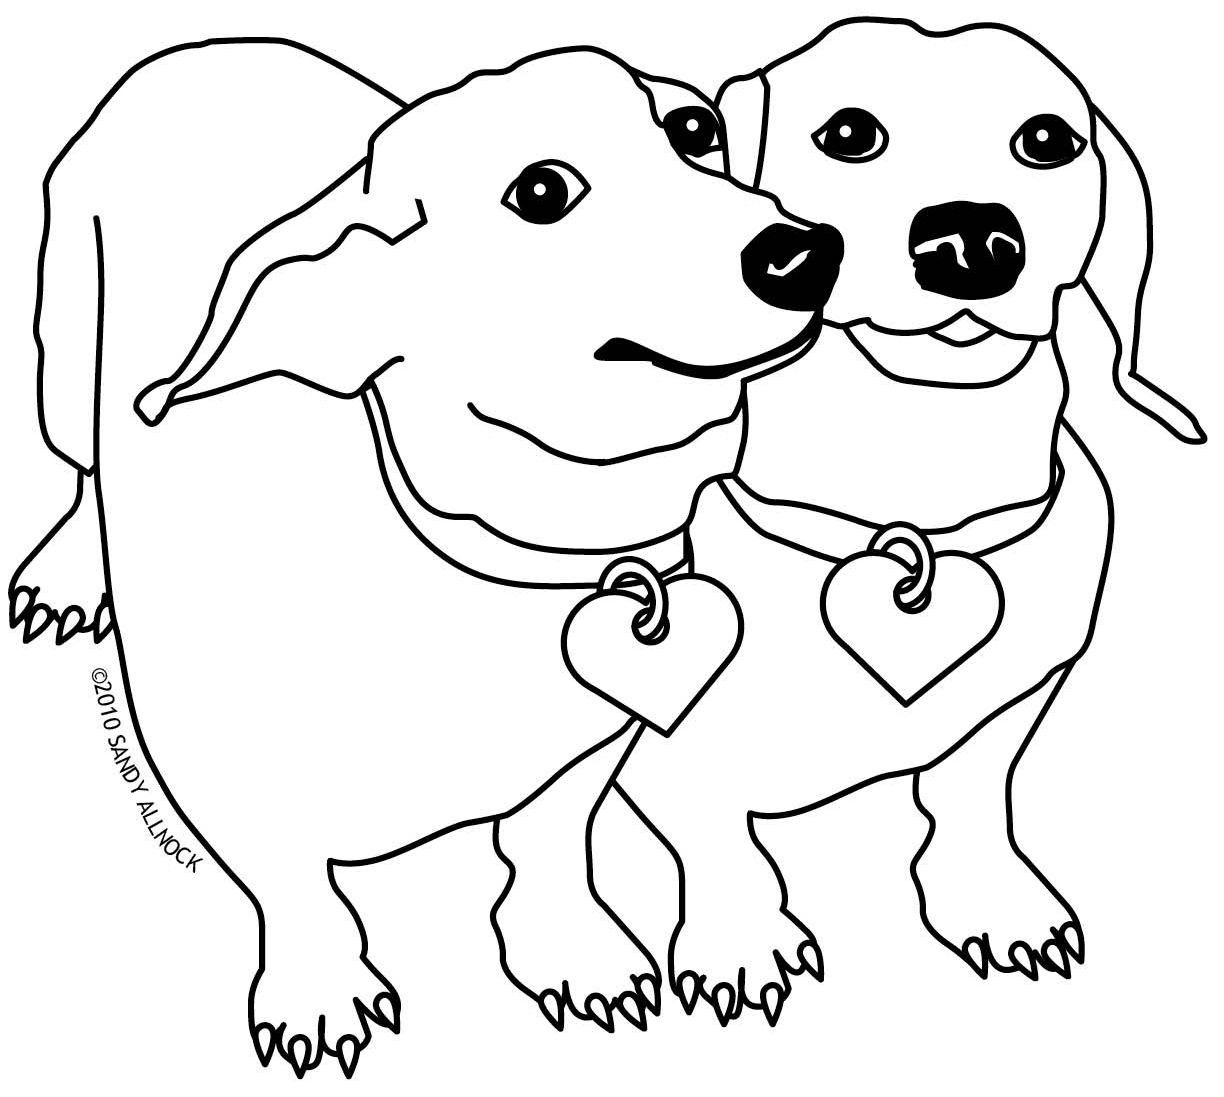 Dog Coloring Book For Adults By Colorit Colorit Hasby Mubarok 9780998225944 Amazon Com Books Dog Coloring Book Pattern Coloring Pages Dog Coloring Page